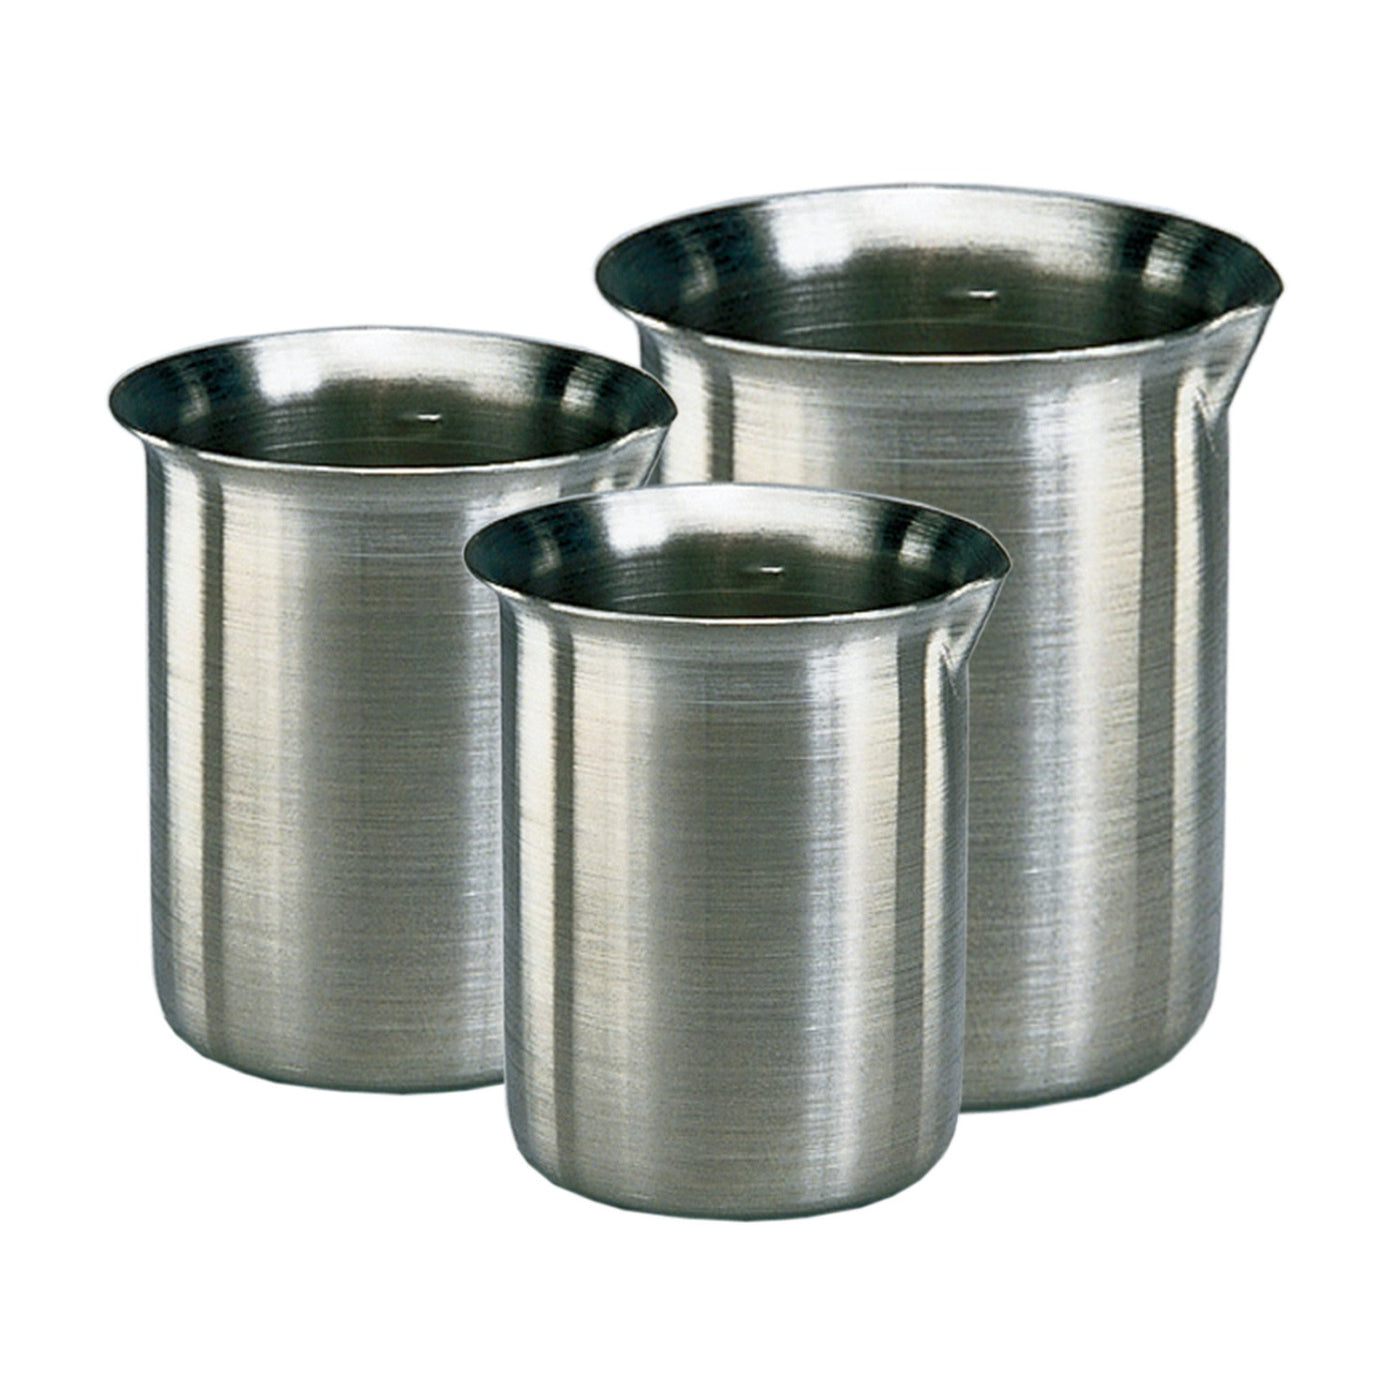 Griffin Style Beakers-Laboratory Accessory-Mortech Manufacturing Company Inc. Quality Stainless Steel Autopsy, Morgue, Funeral Home, Necropsy, Veterinary / Anatomy, Dissection Equipment and Accessories